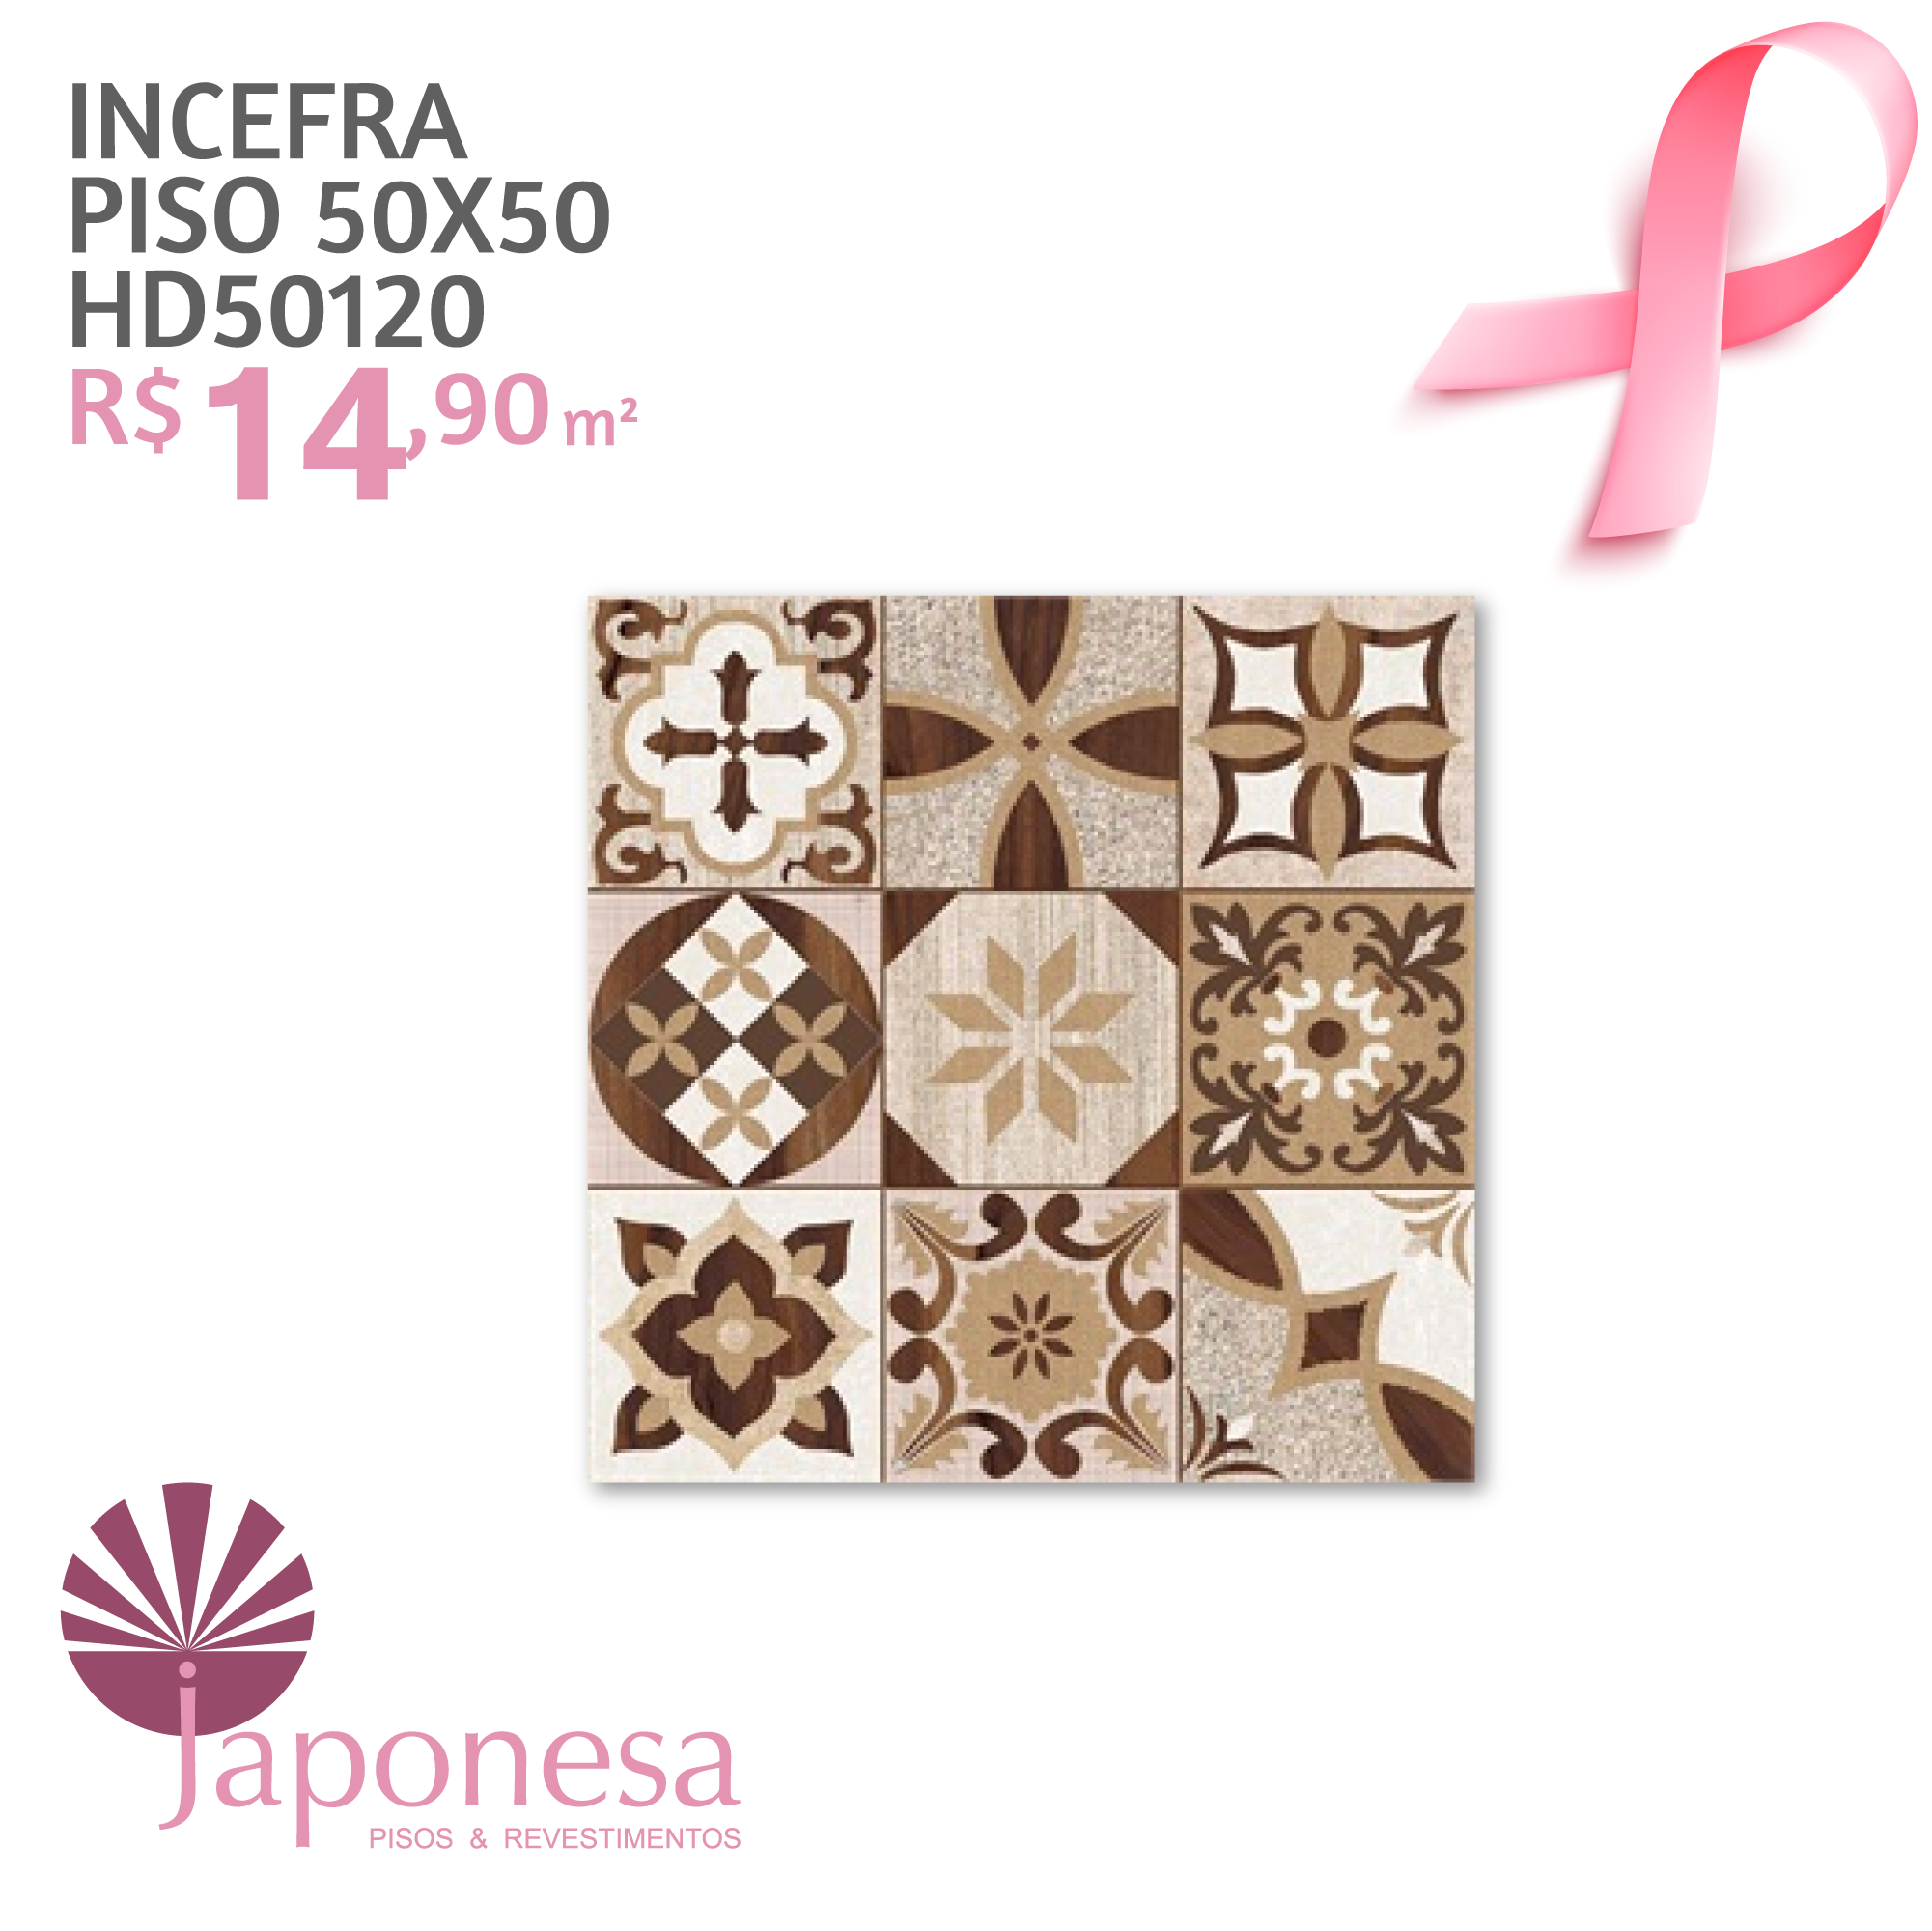 Incefra Piso 50×50 HD60120